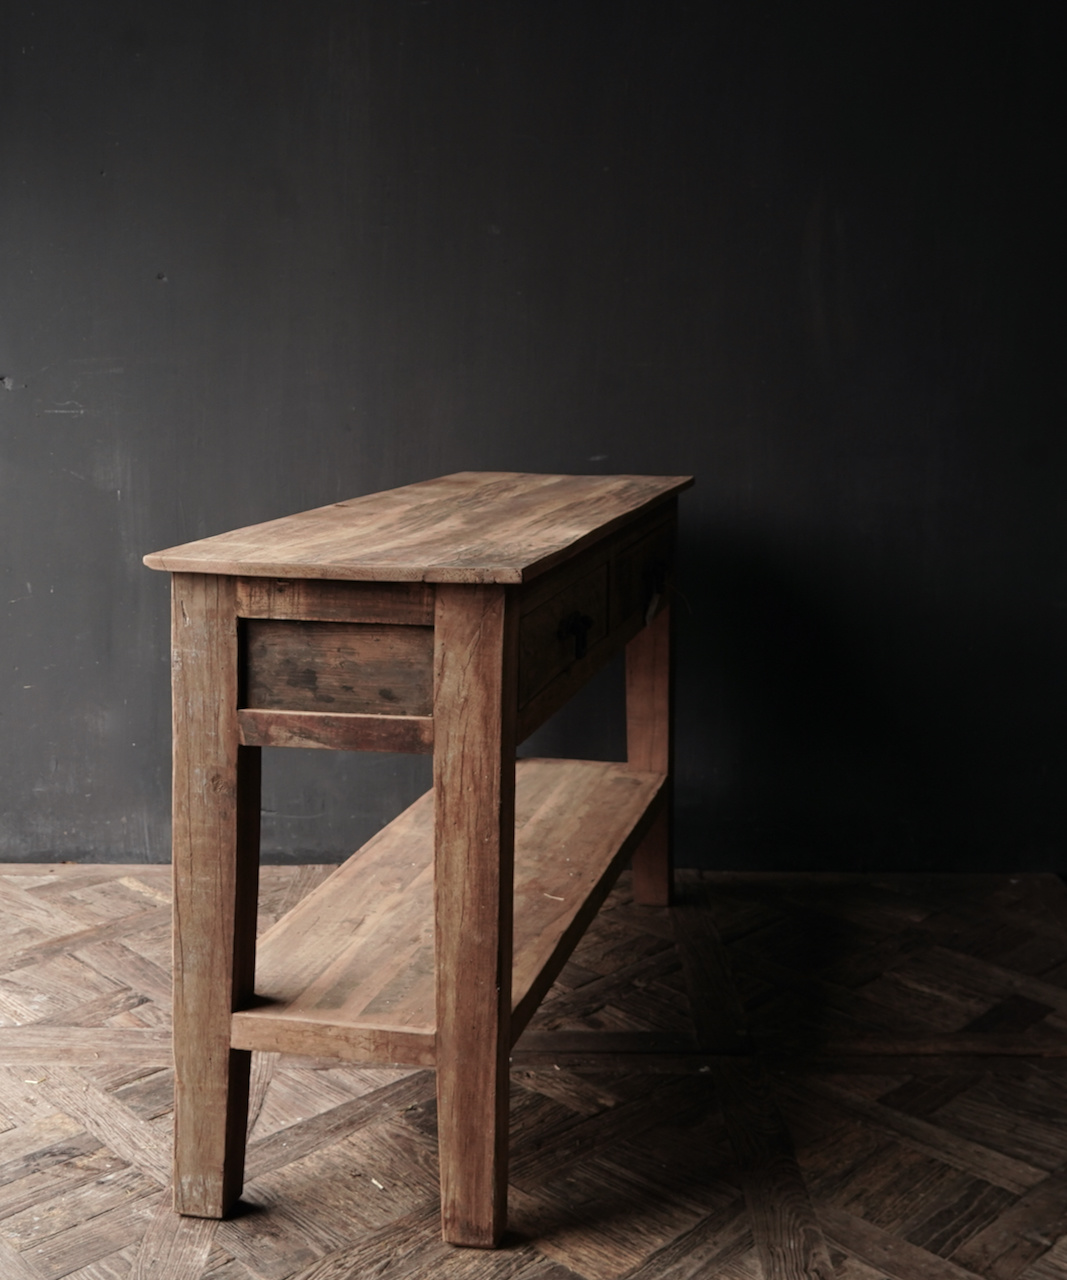 Stoer Robust old wooden side table or wall table with two drawers-4